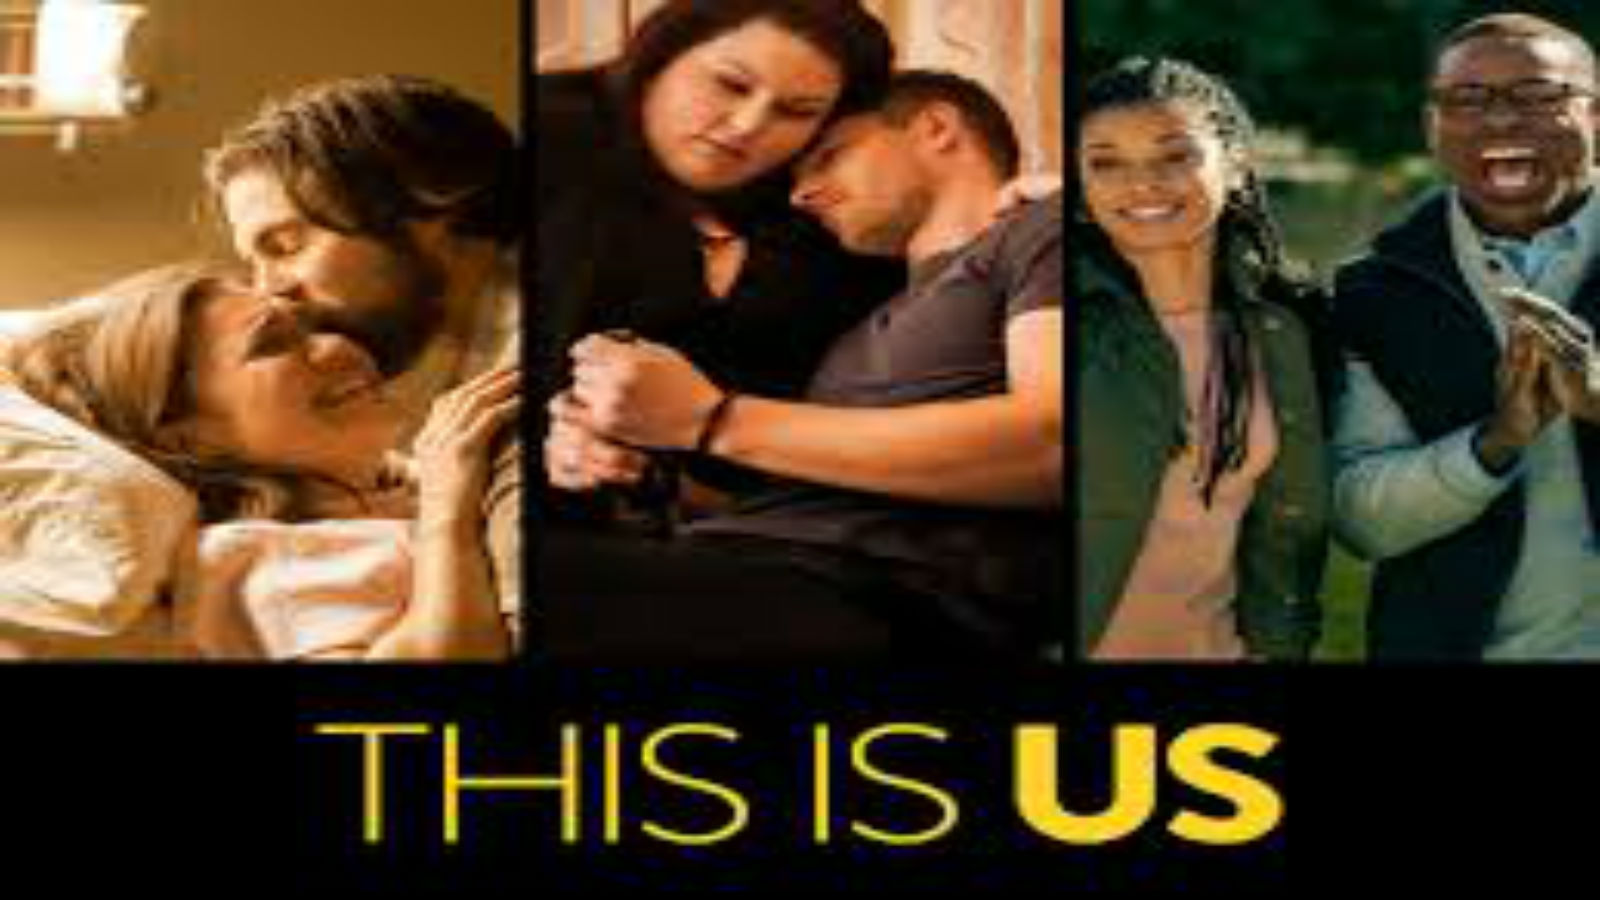 'This Is Us' Spoilers: Jack Pearson's death coming soon, will fans be surprised?